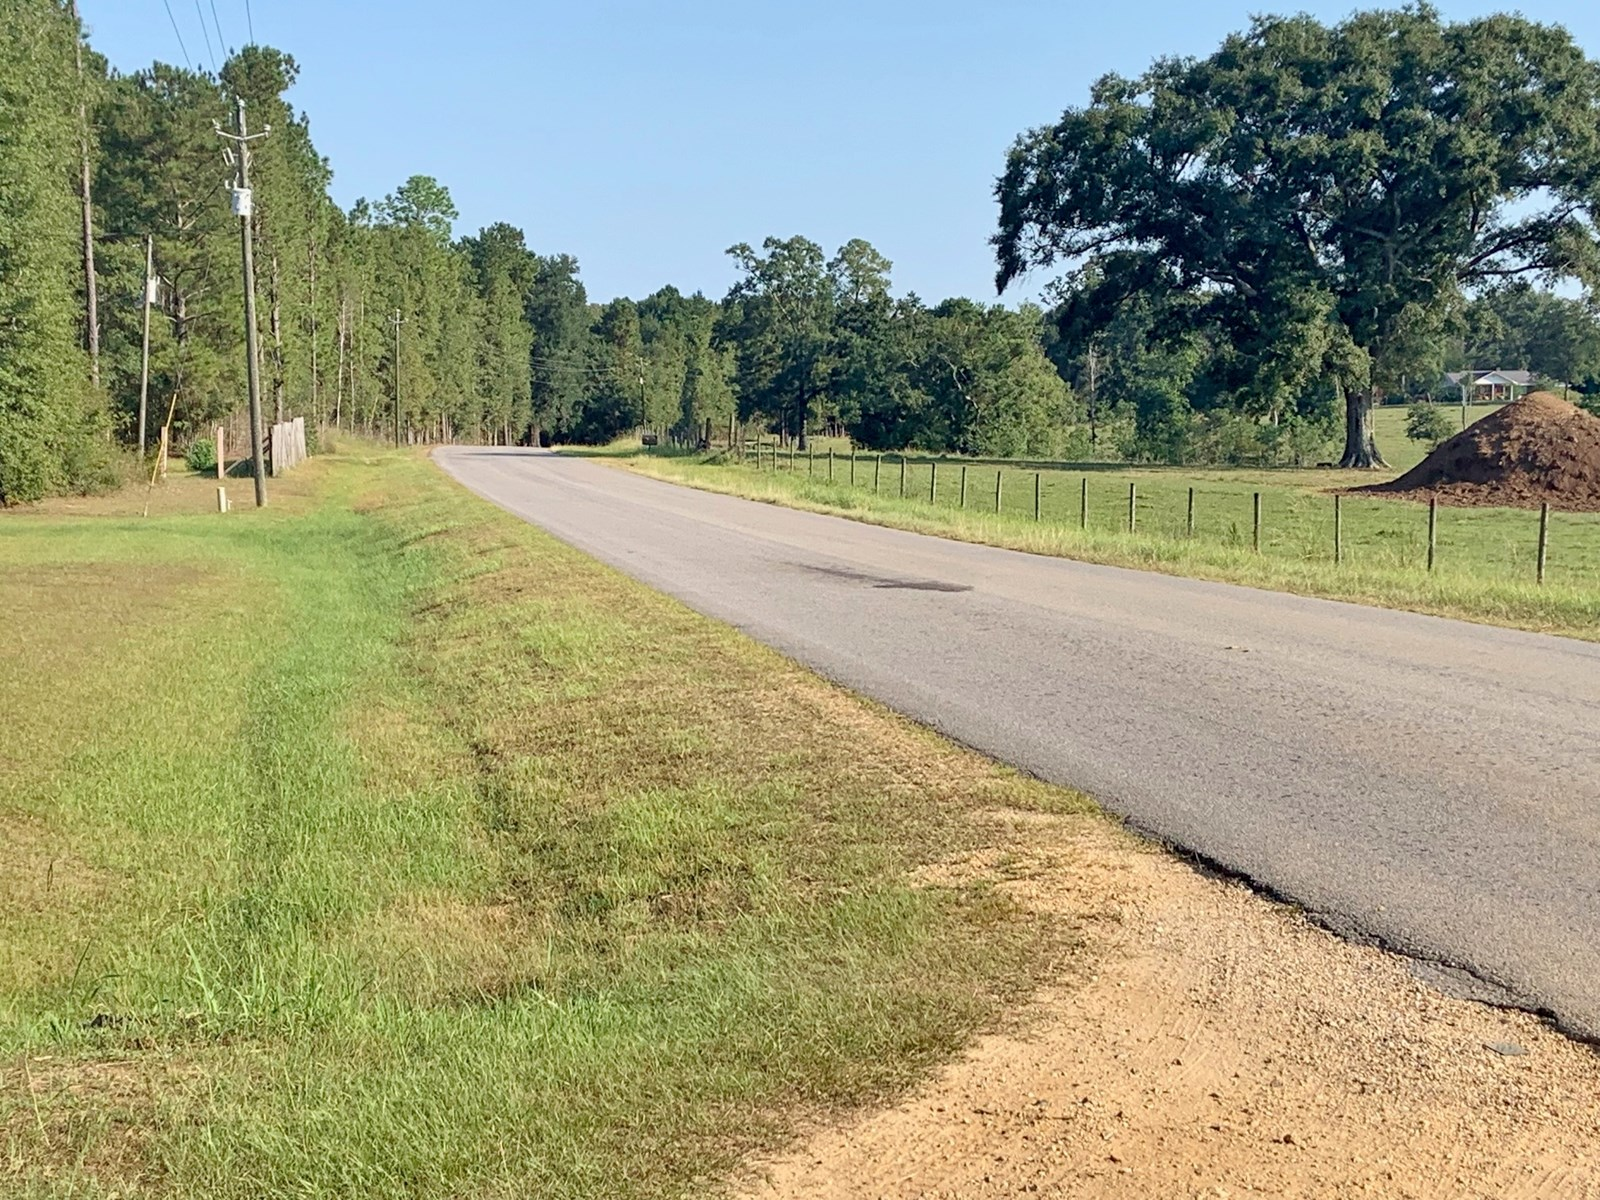 70 Acres Hunting, Development Land for Sale George Co, MS